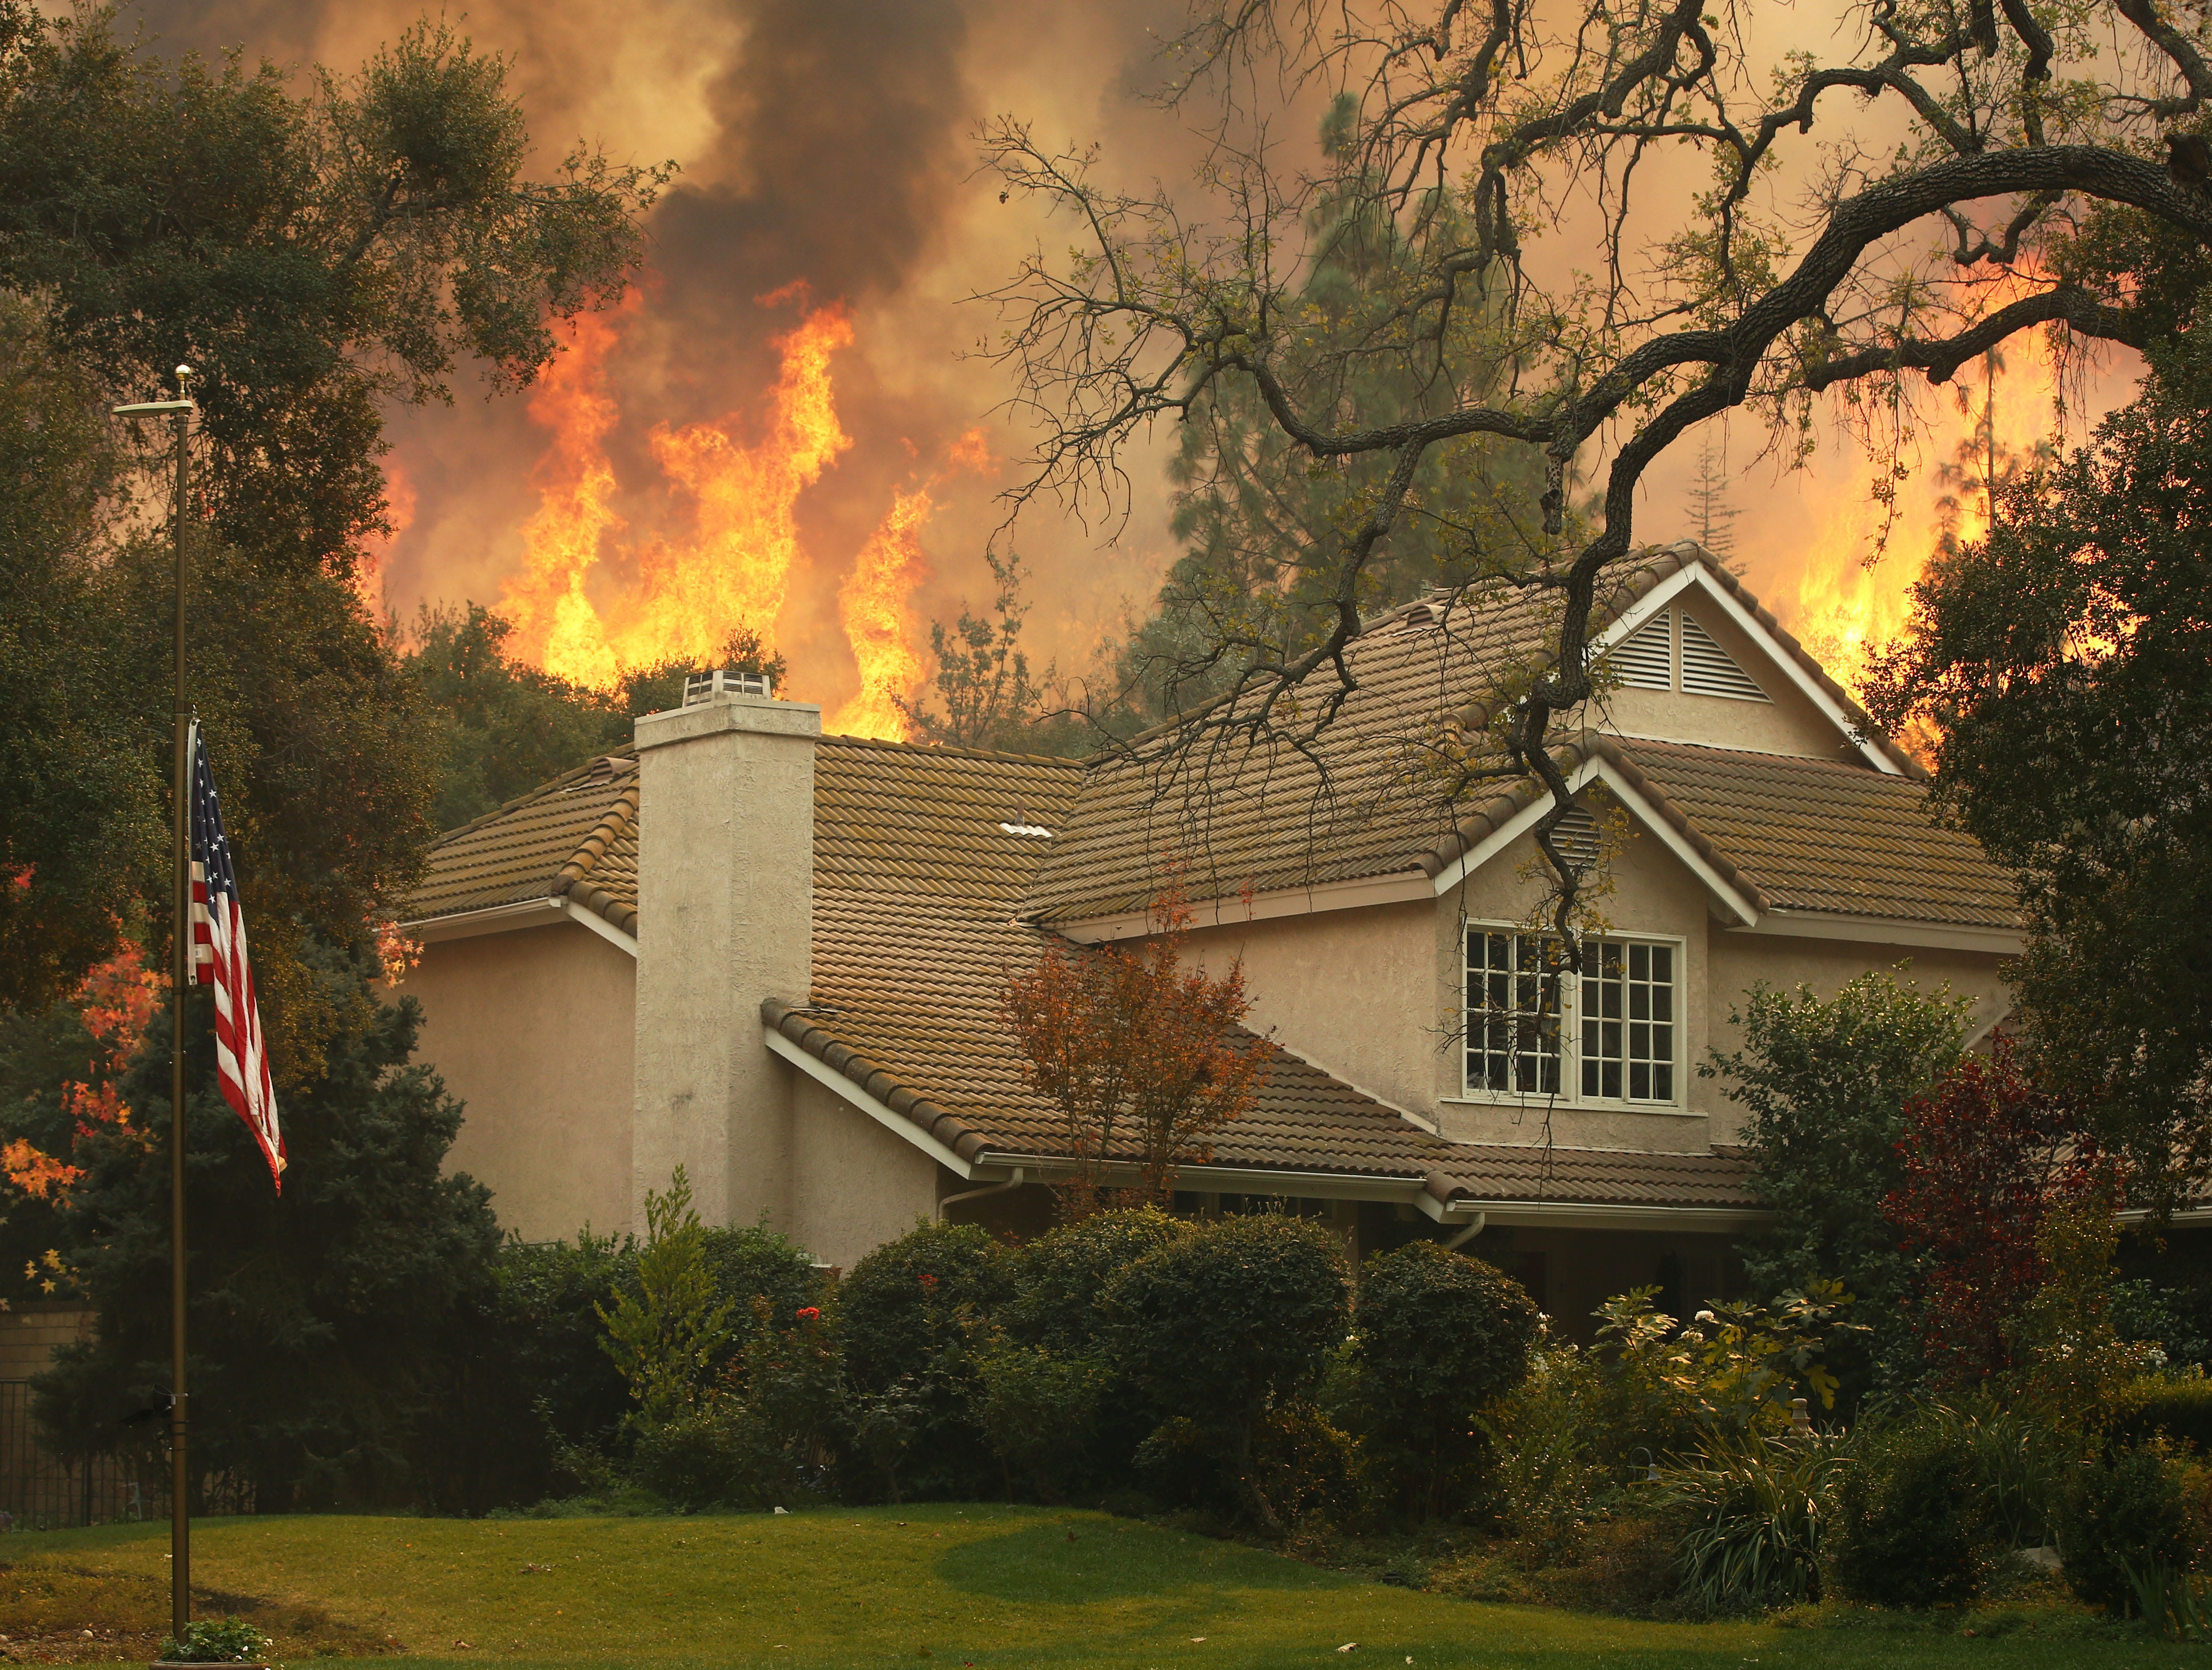 A U.S. flag is displayed at half-staff to honor the shooting victims as the Woolsey fire burns on the hill behind a home in Westlake Village. Twelve people were shot and killed Wednesday by gunman Ian David Long who opened fire at the Borderline Bar and Grill.